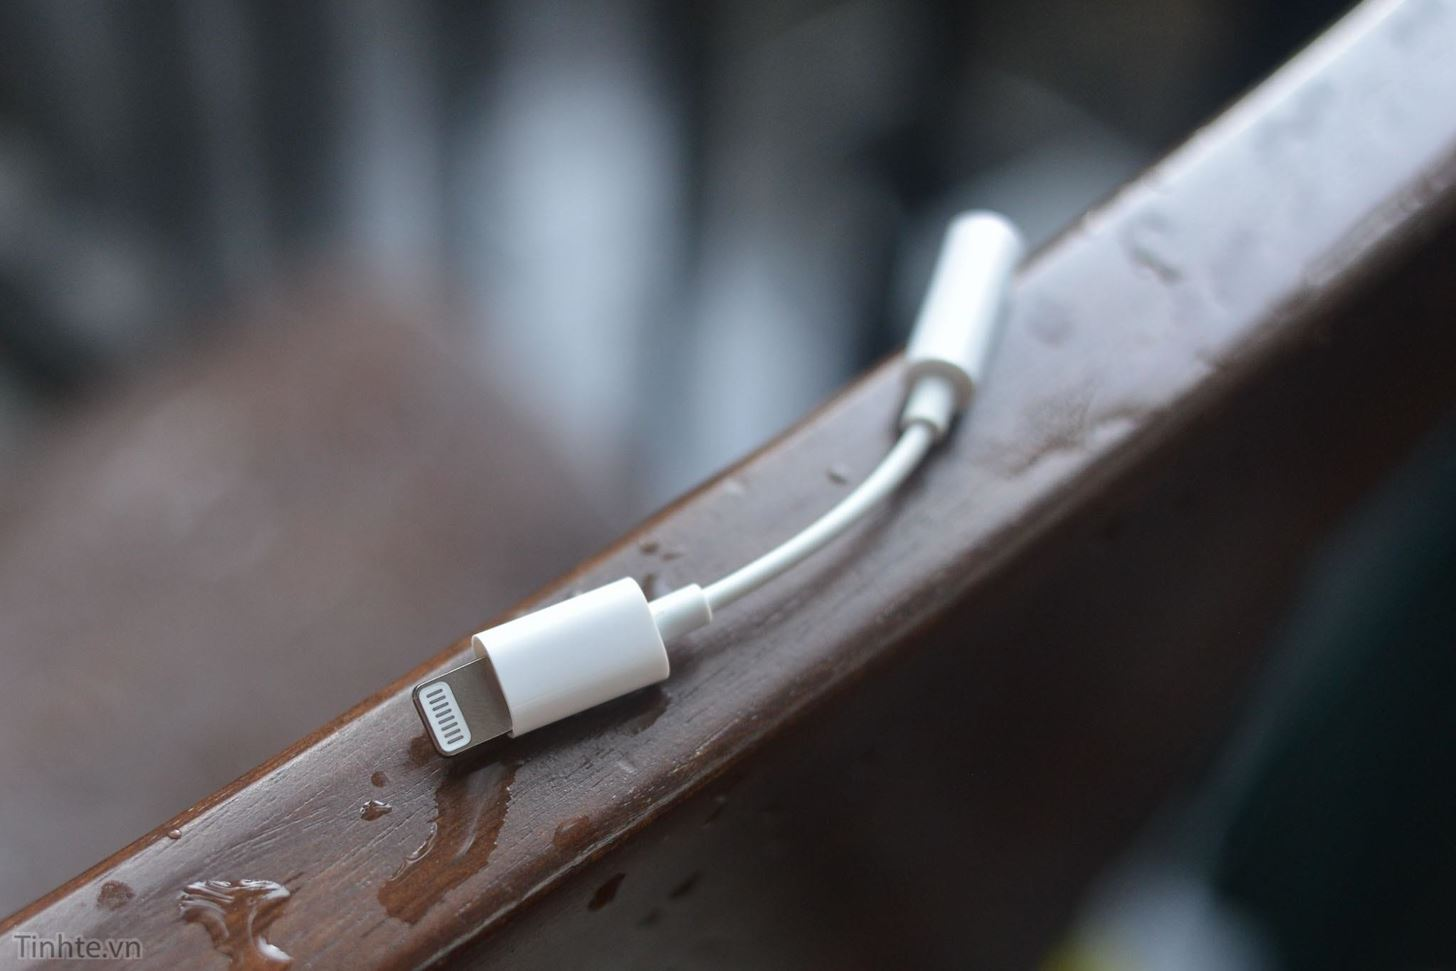 Finally, Real Proof That the iPhone 7 Will Come with a Headphones Lightning Adapter